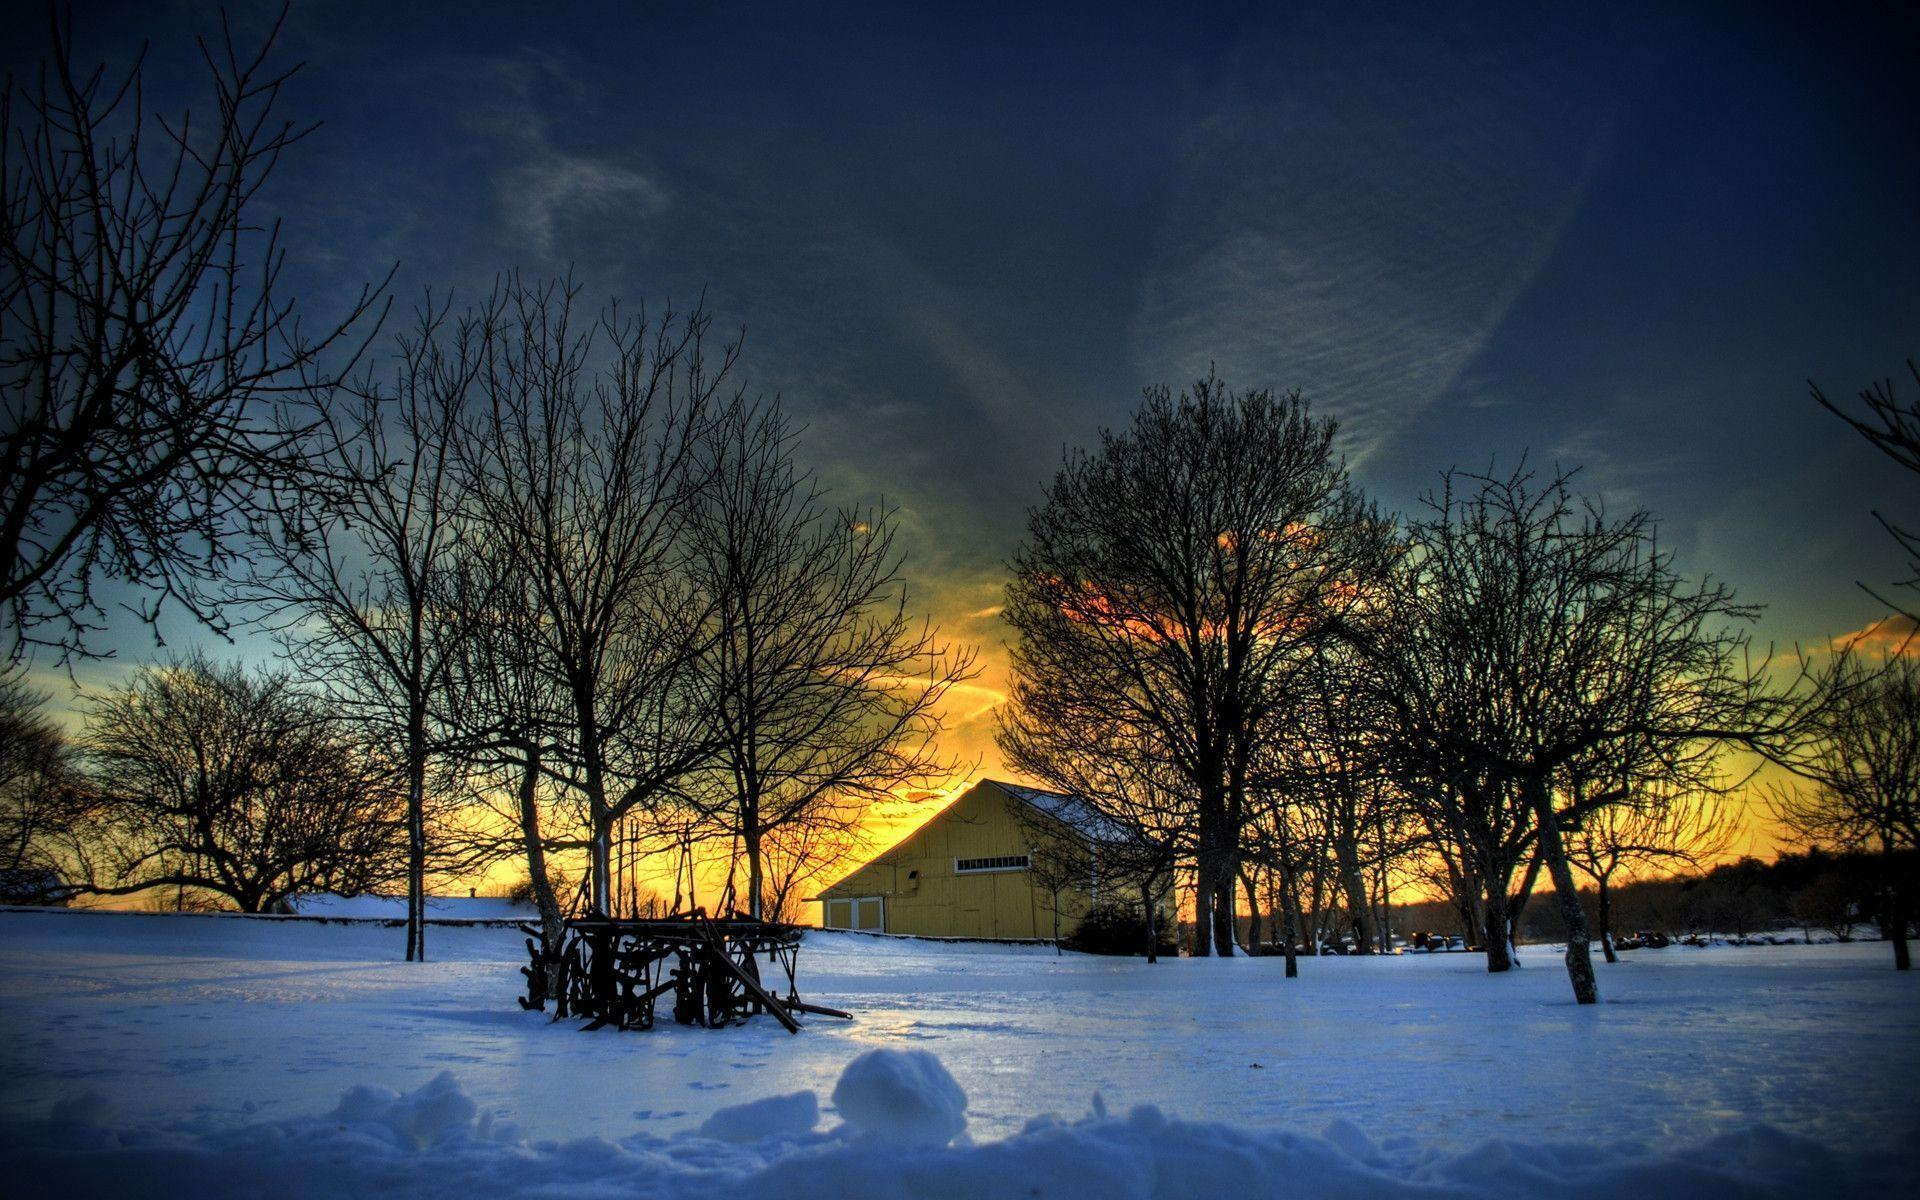 winter nature best wallpapers ever - photo #46